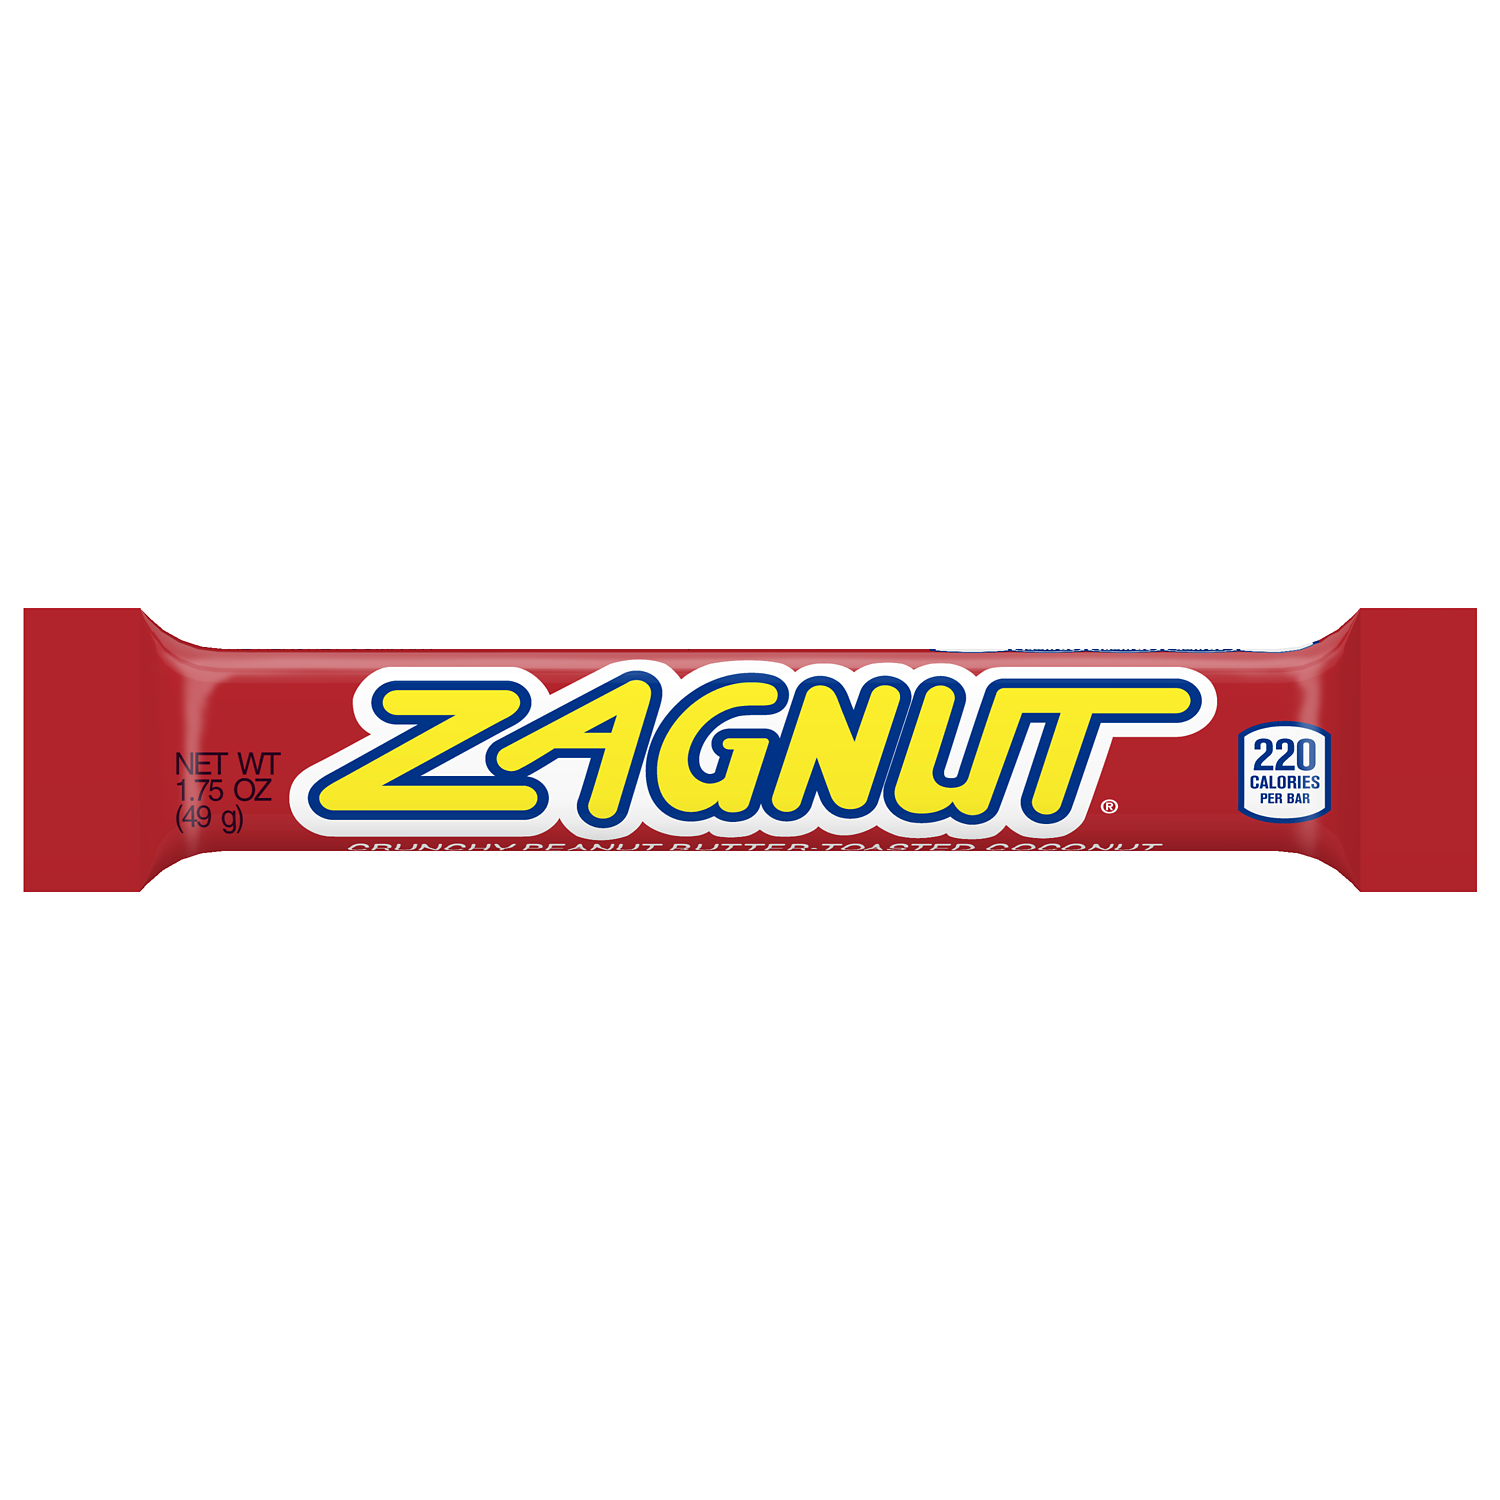 ZAGNUT Peanut Butter and Coconut Candy Bar, 1.75 oz - Front of Package